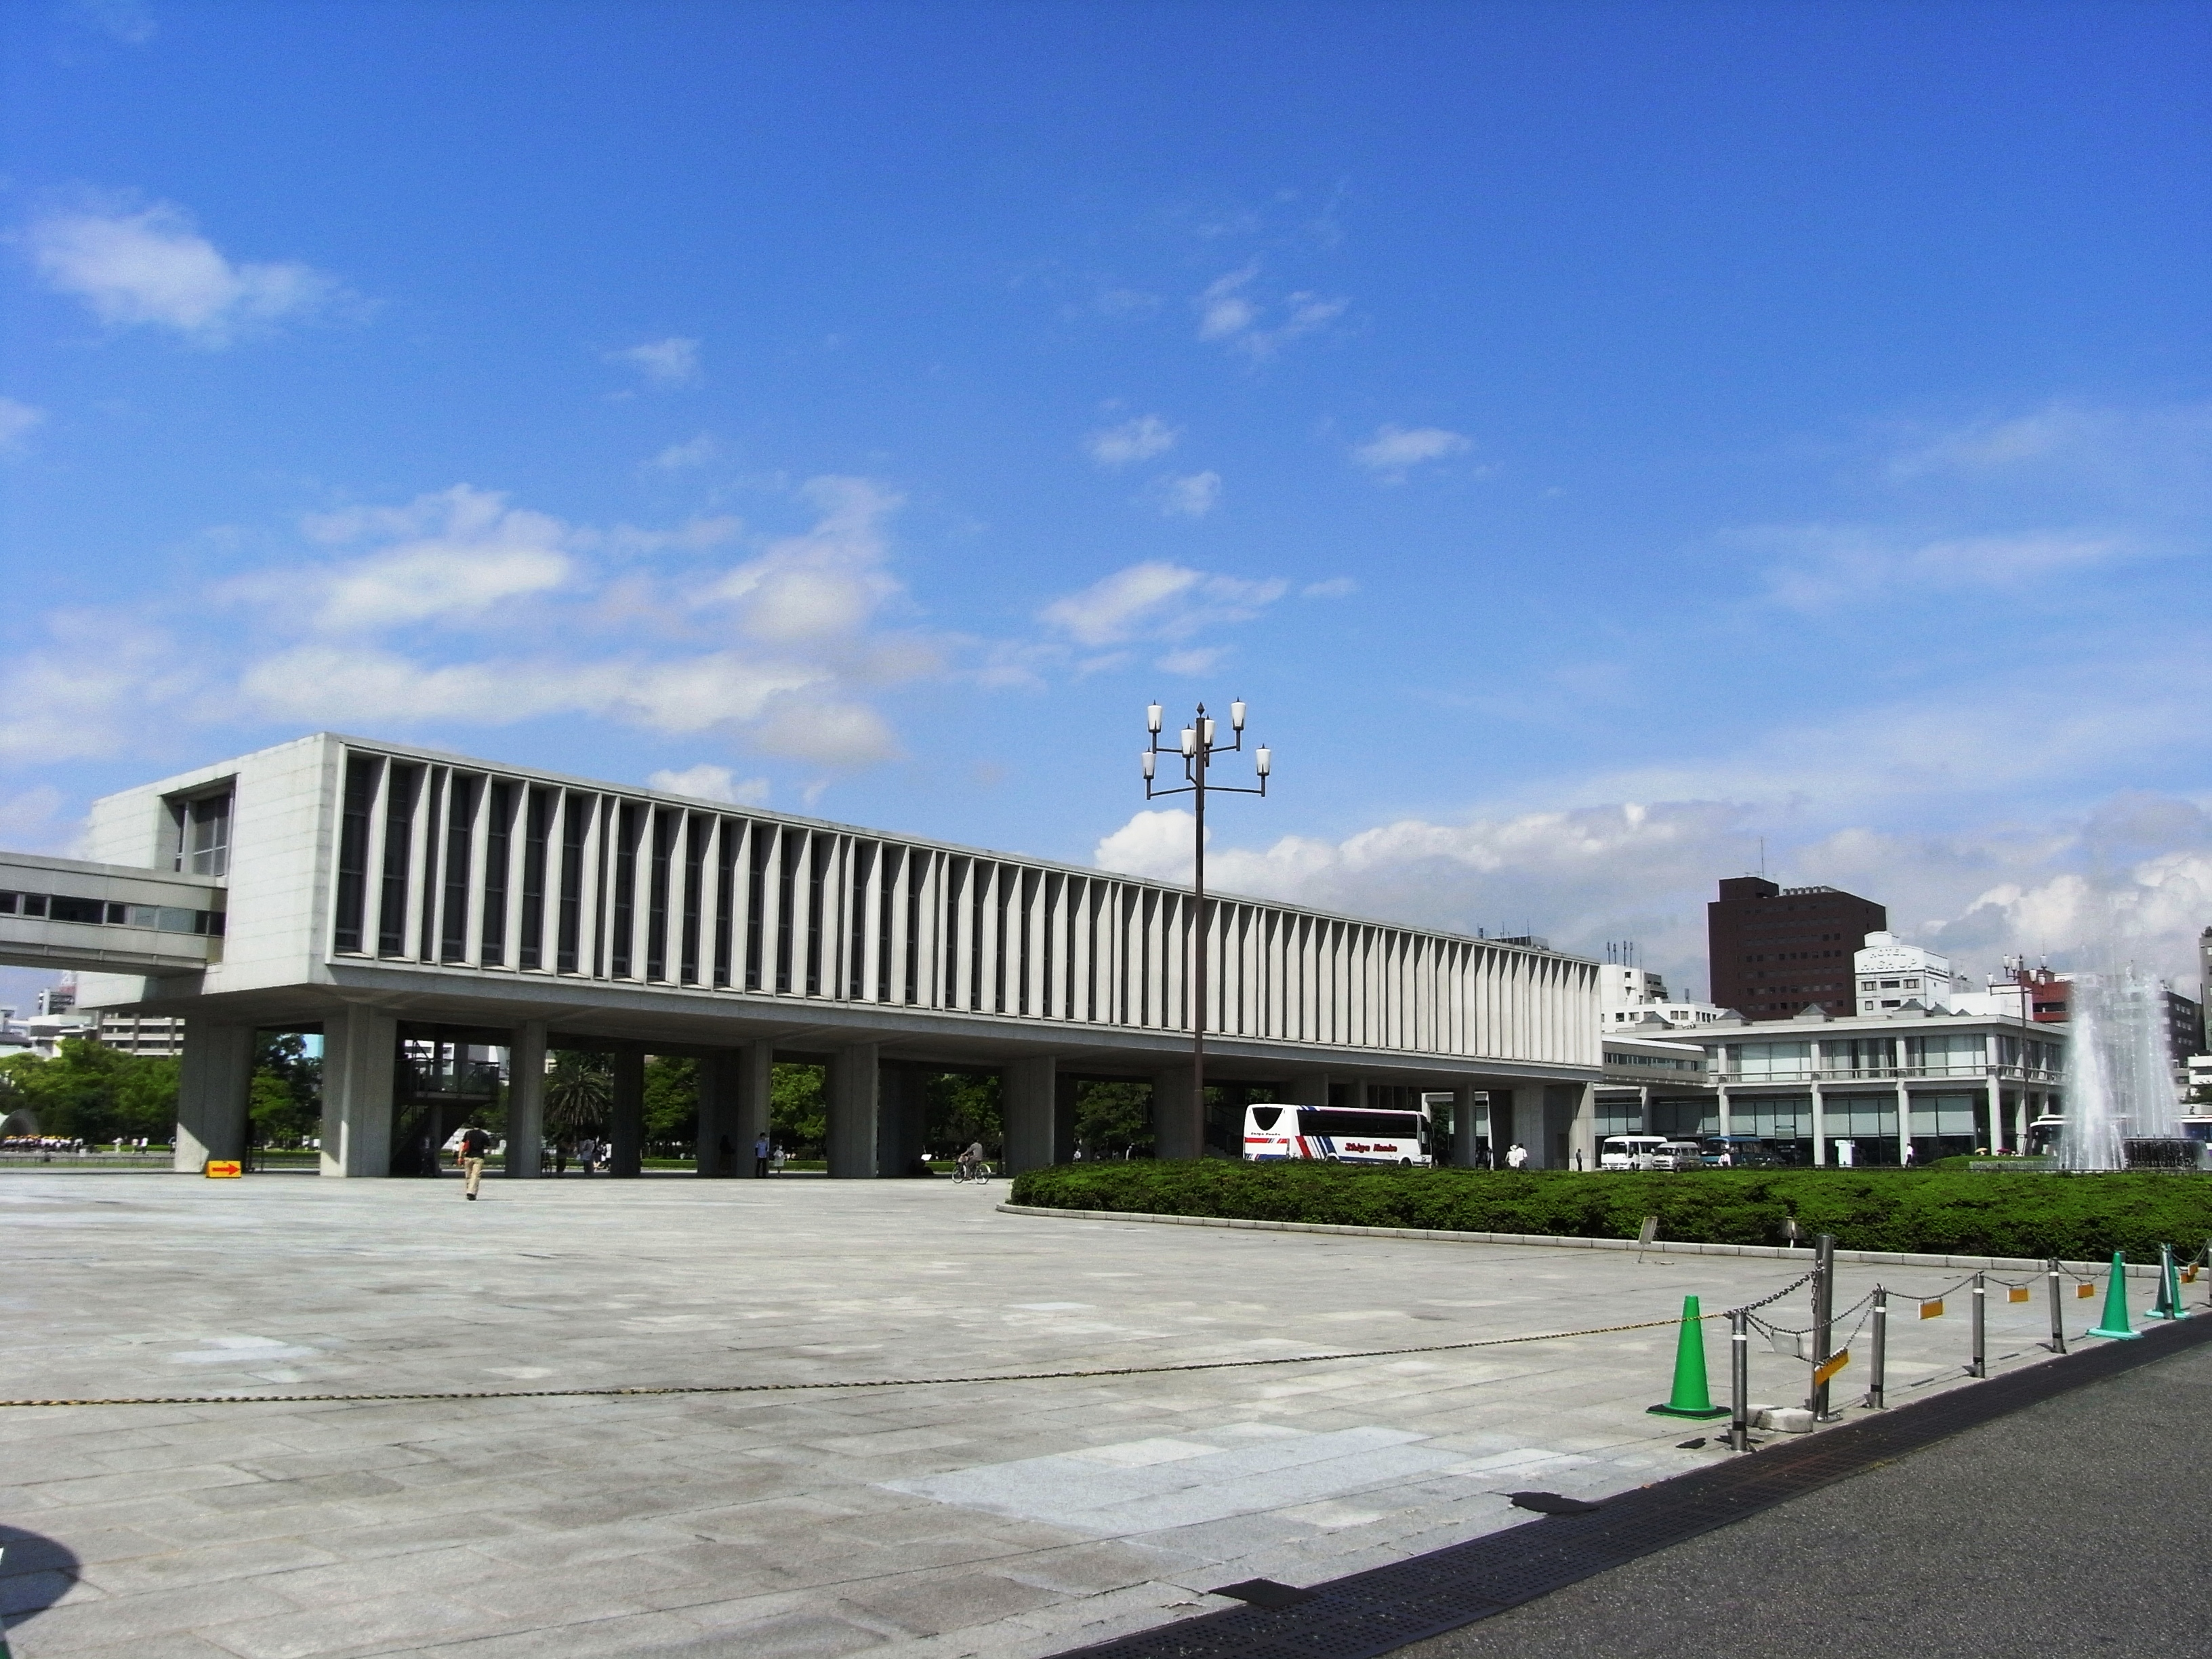 File:Hiroshima Peace Memorial Museum 2008 02.JPG - Wikimedia Commons